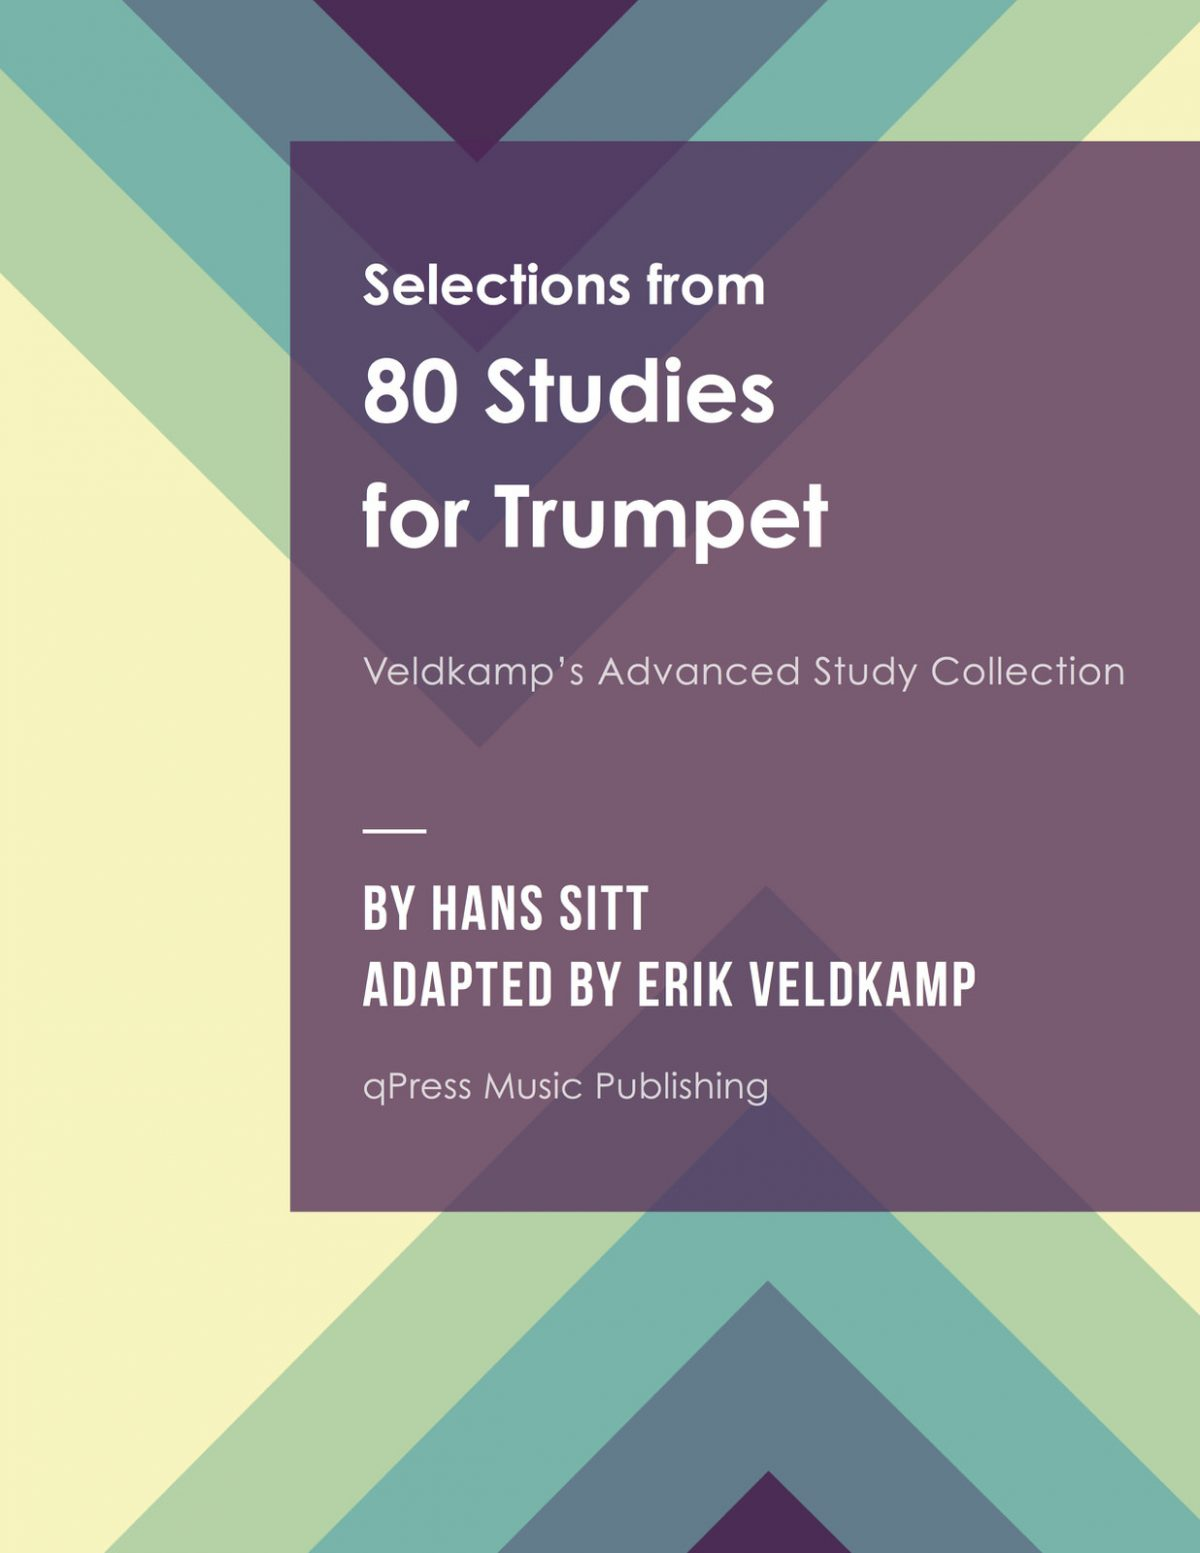 Veldkamp-Sitt, 80 Studies for Trumpet-p001